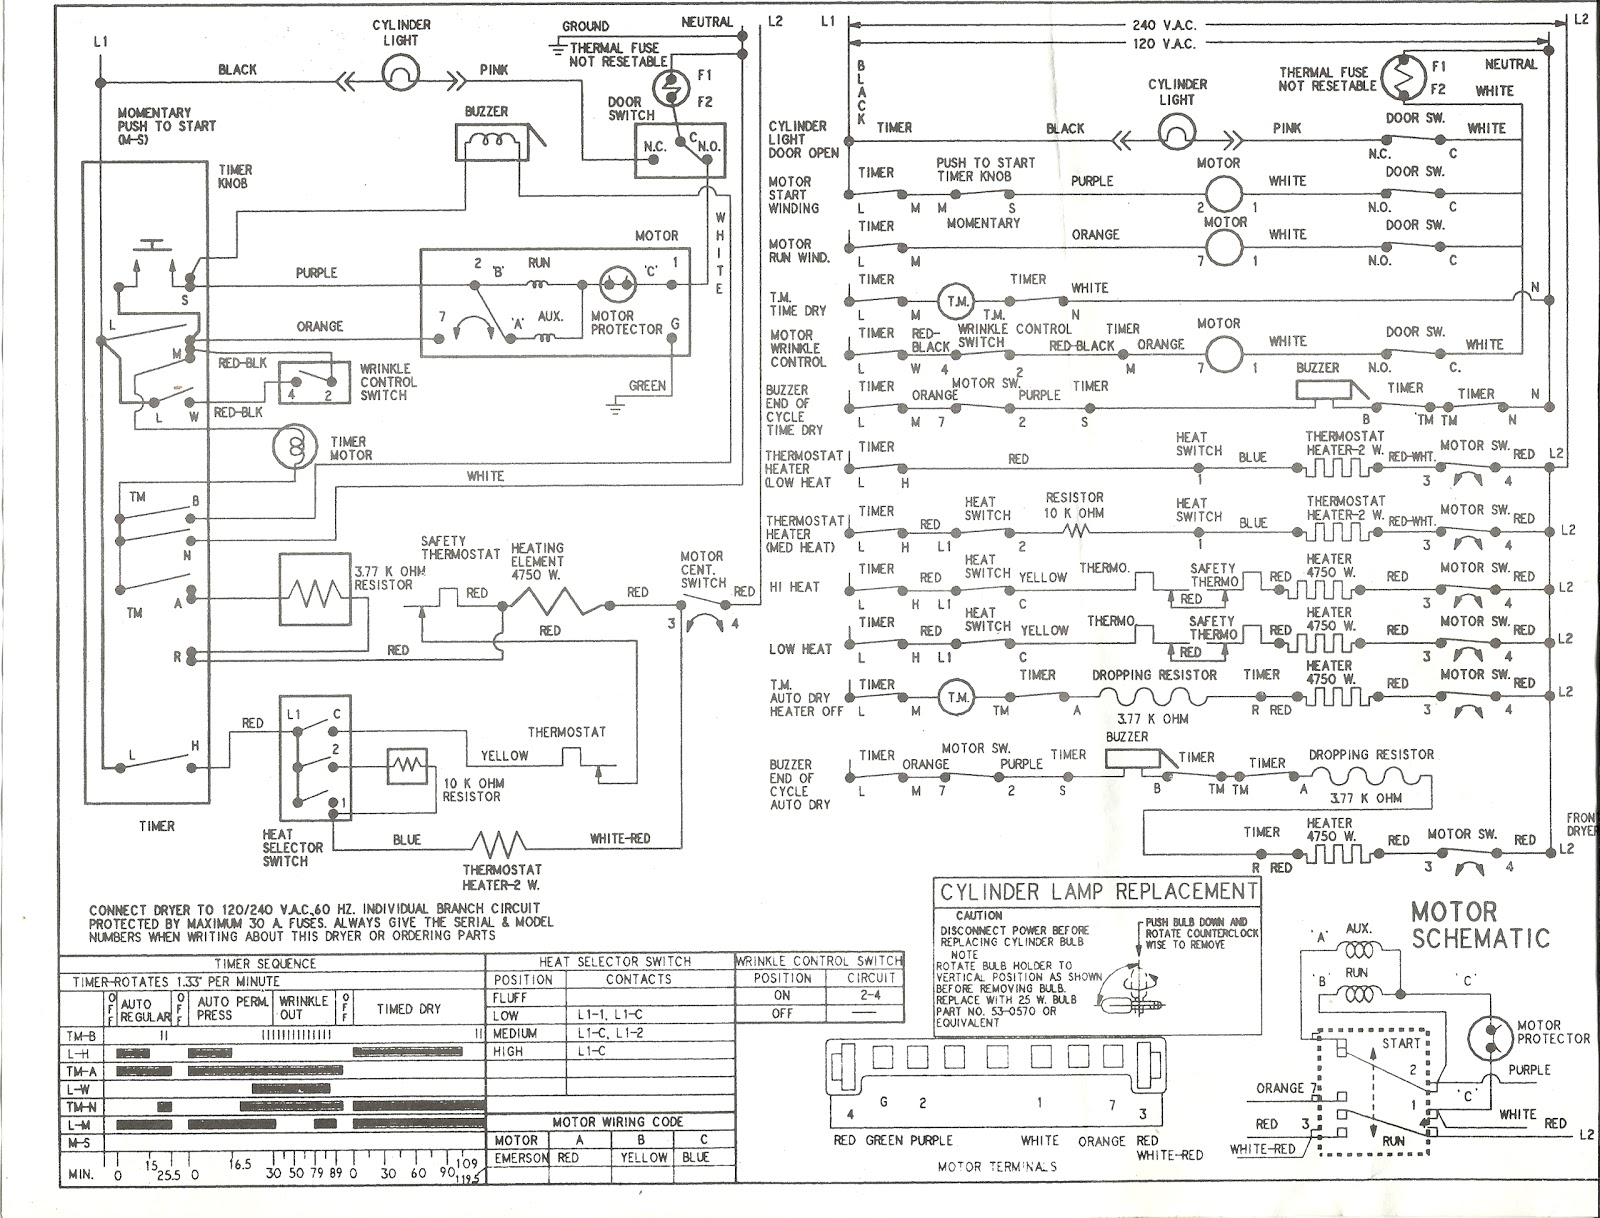 Appliance talk kenmore series electric dryer wiring diagram schematic cheapraybanclubmaster